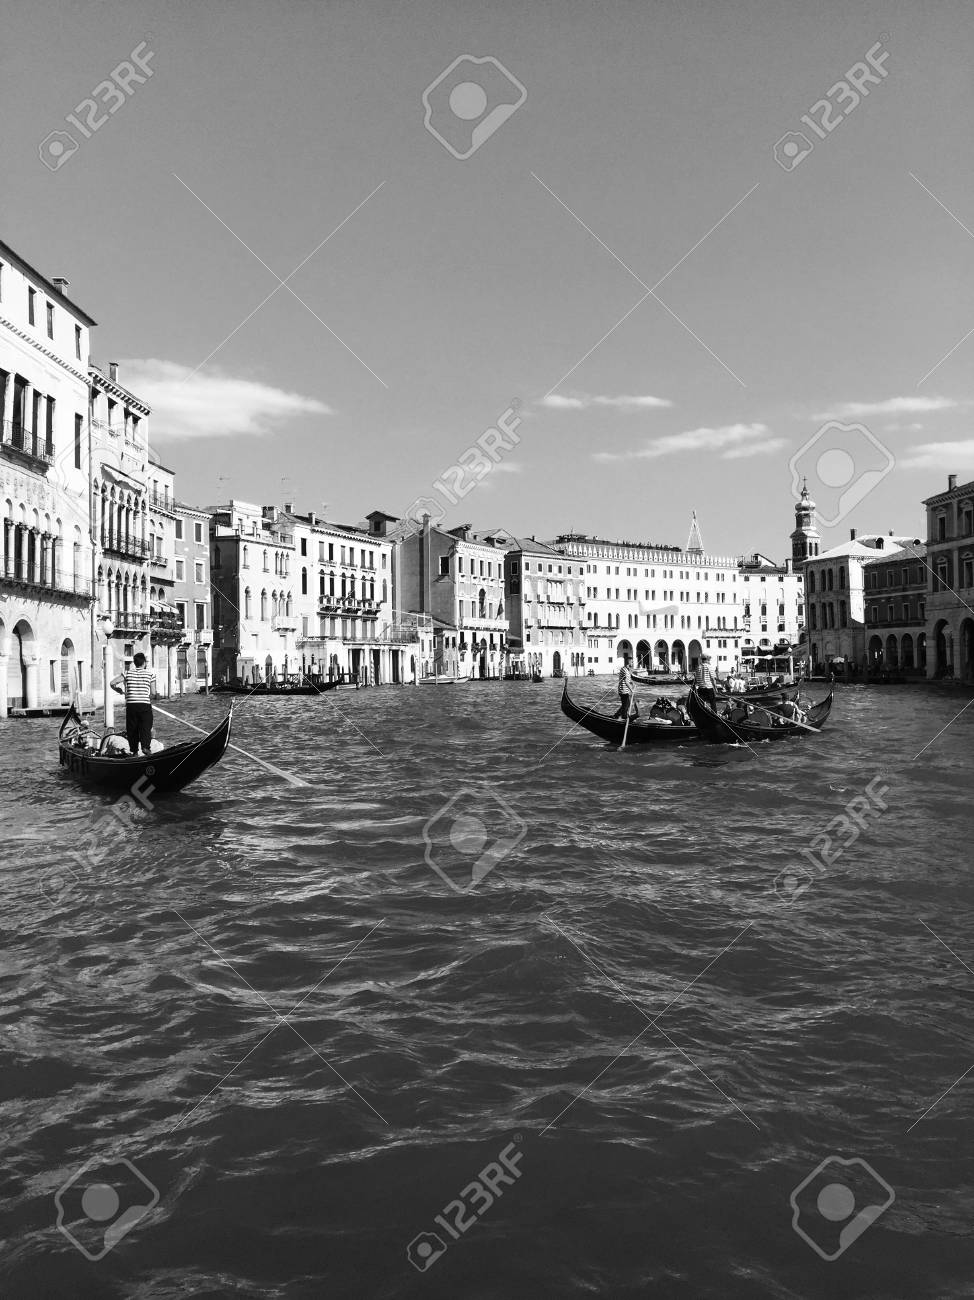 Black And White Postcard From >> Black And White Postcard From Venice Venice Italy Royalty Free